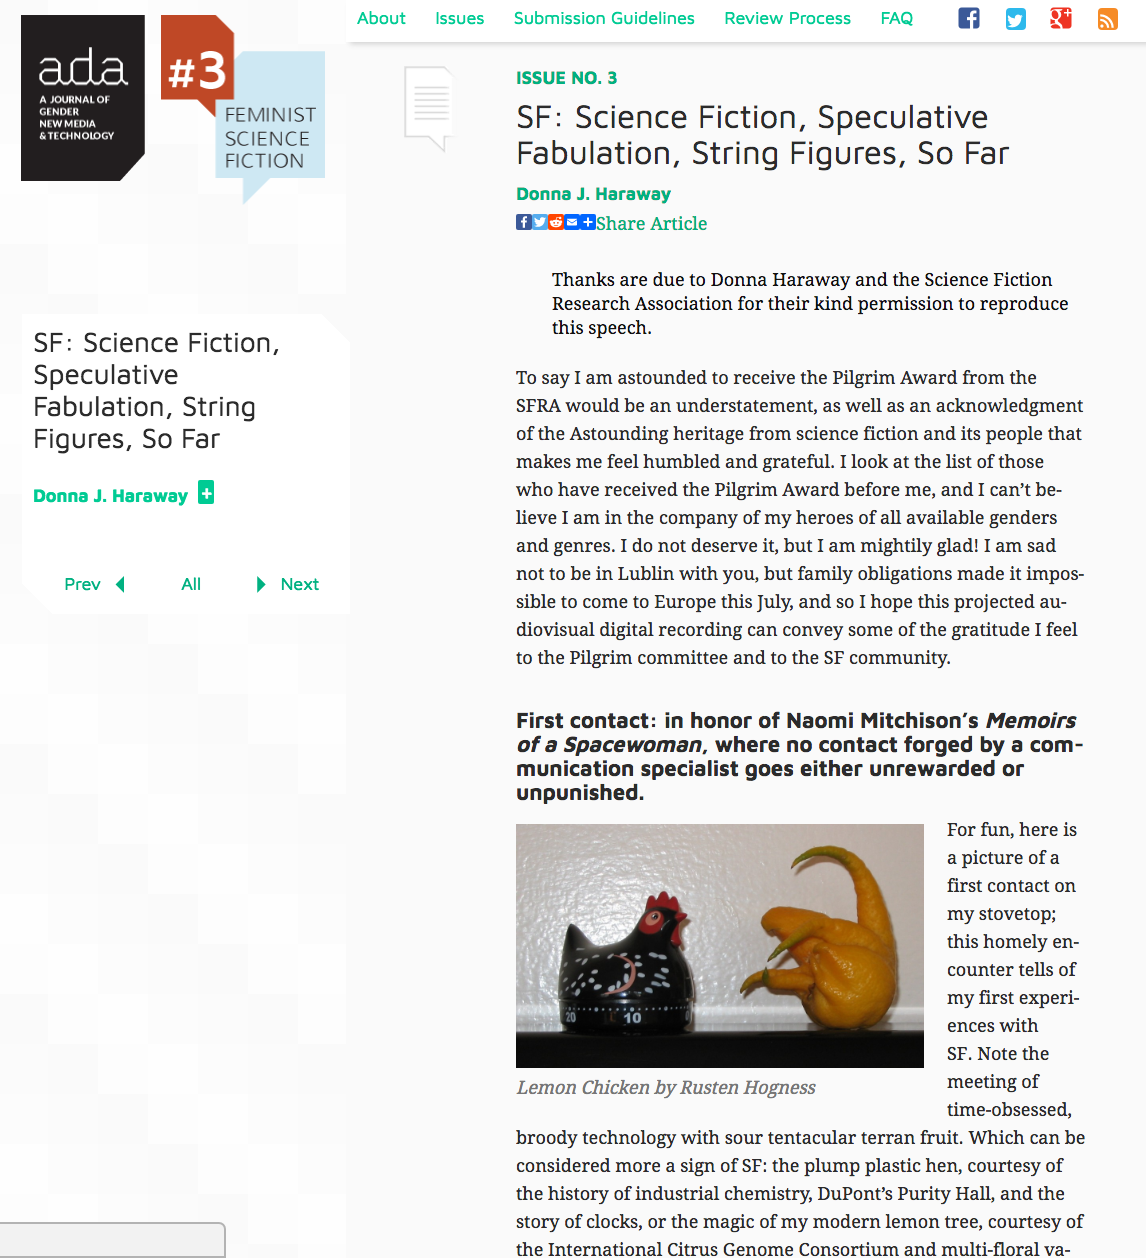 image of donna haraways article in ADA journal